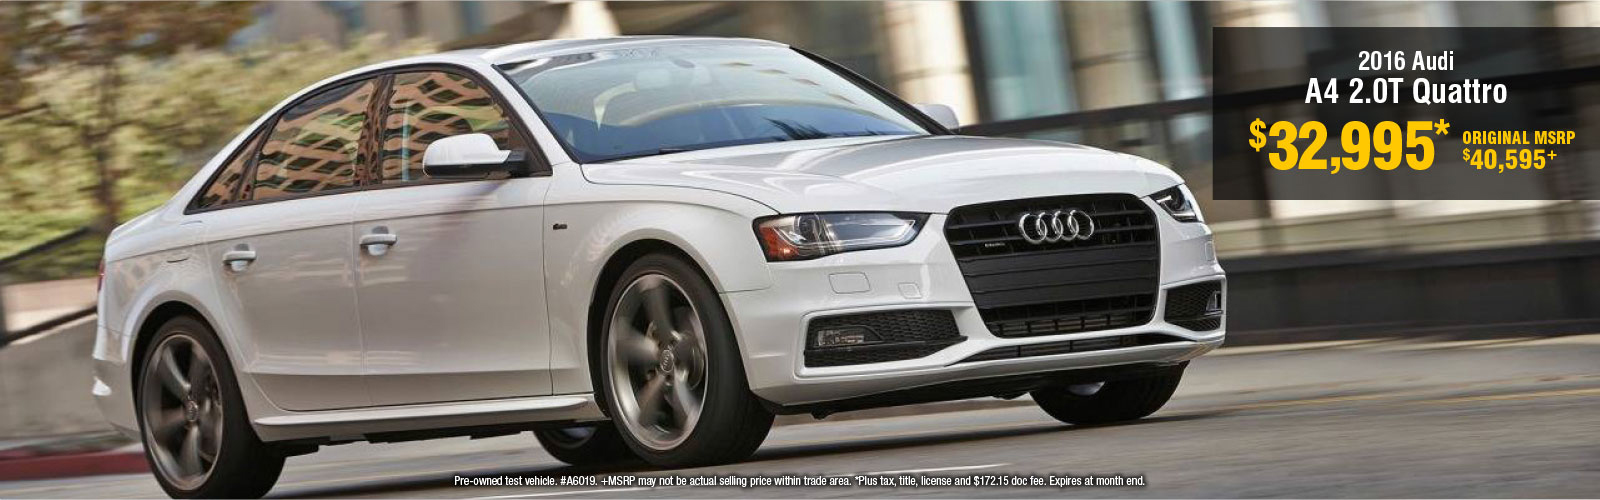 2016 Audi A4 Demo Special Savings Offer in Bloomington-Normal, IL